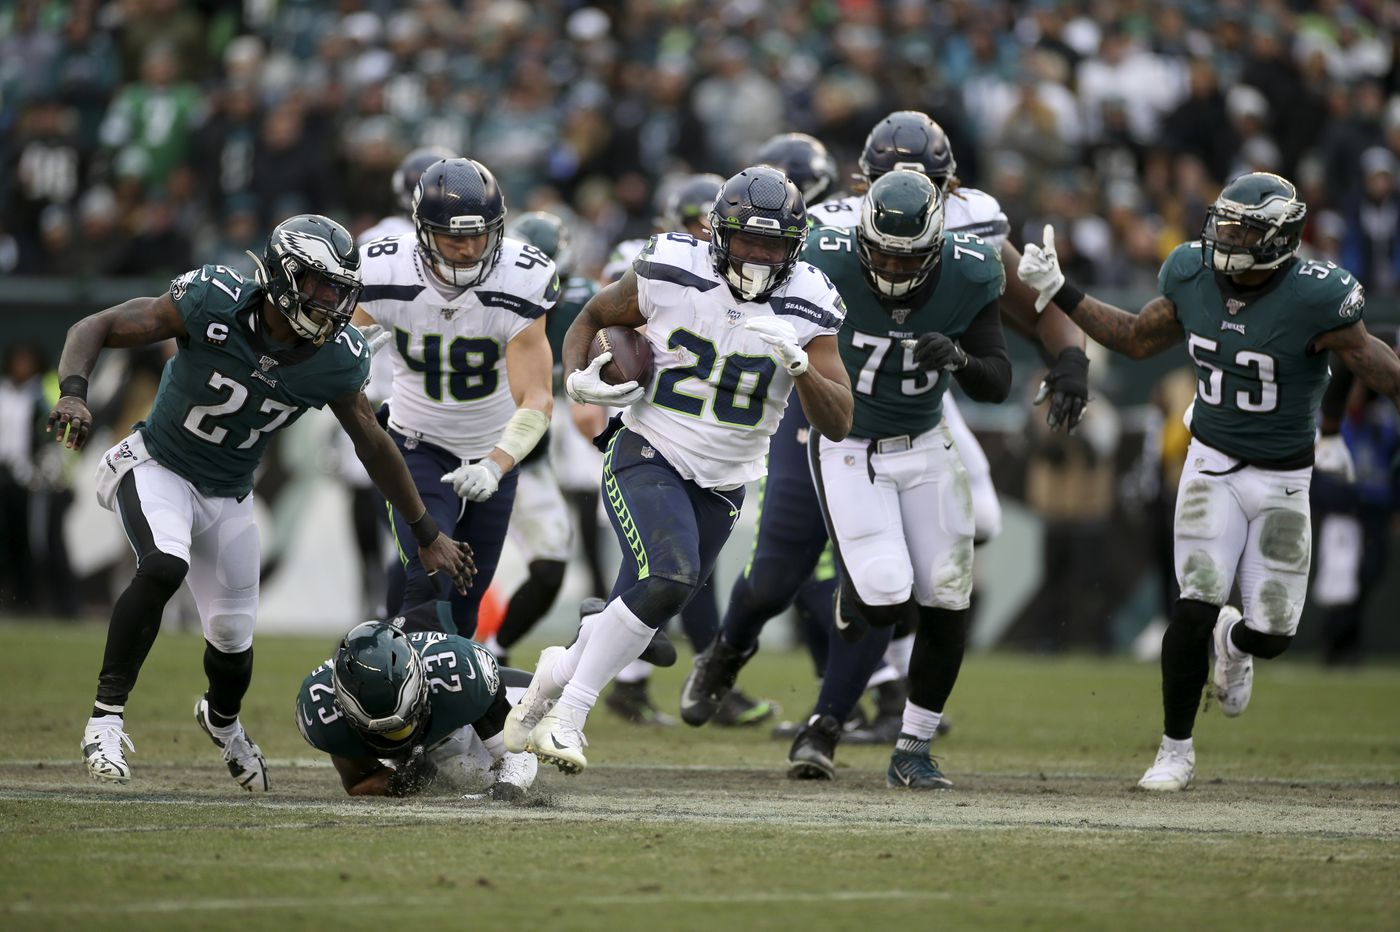 Eagles-Seahawks: Five reasons for the Birds' loss | Paul Domowitch